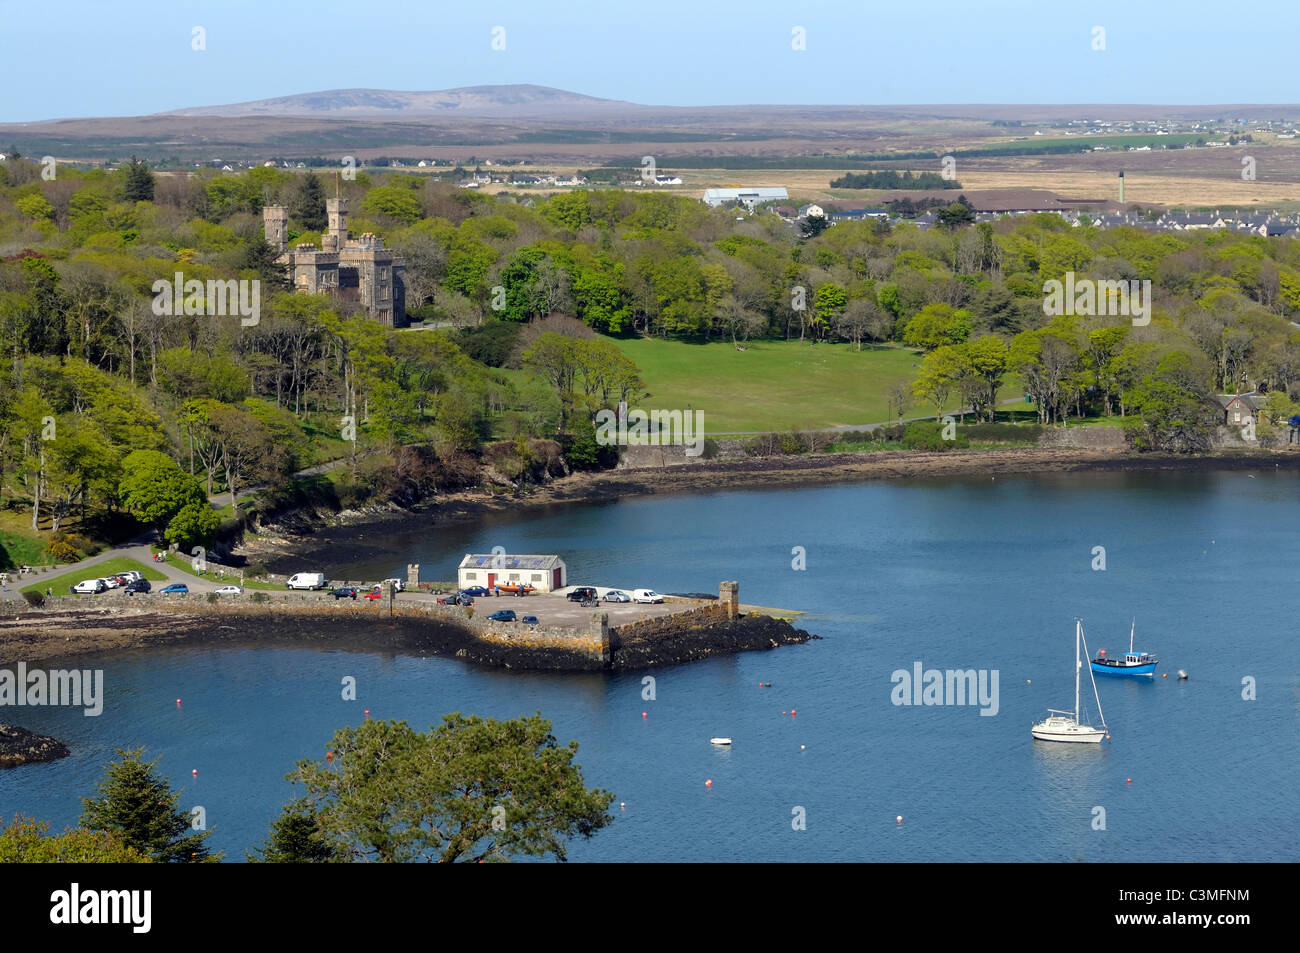 Lews Castle and Cuddy point in Stornoway - Stock Image